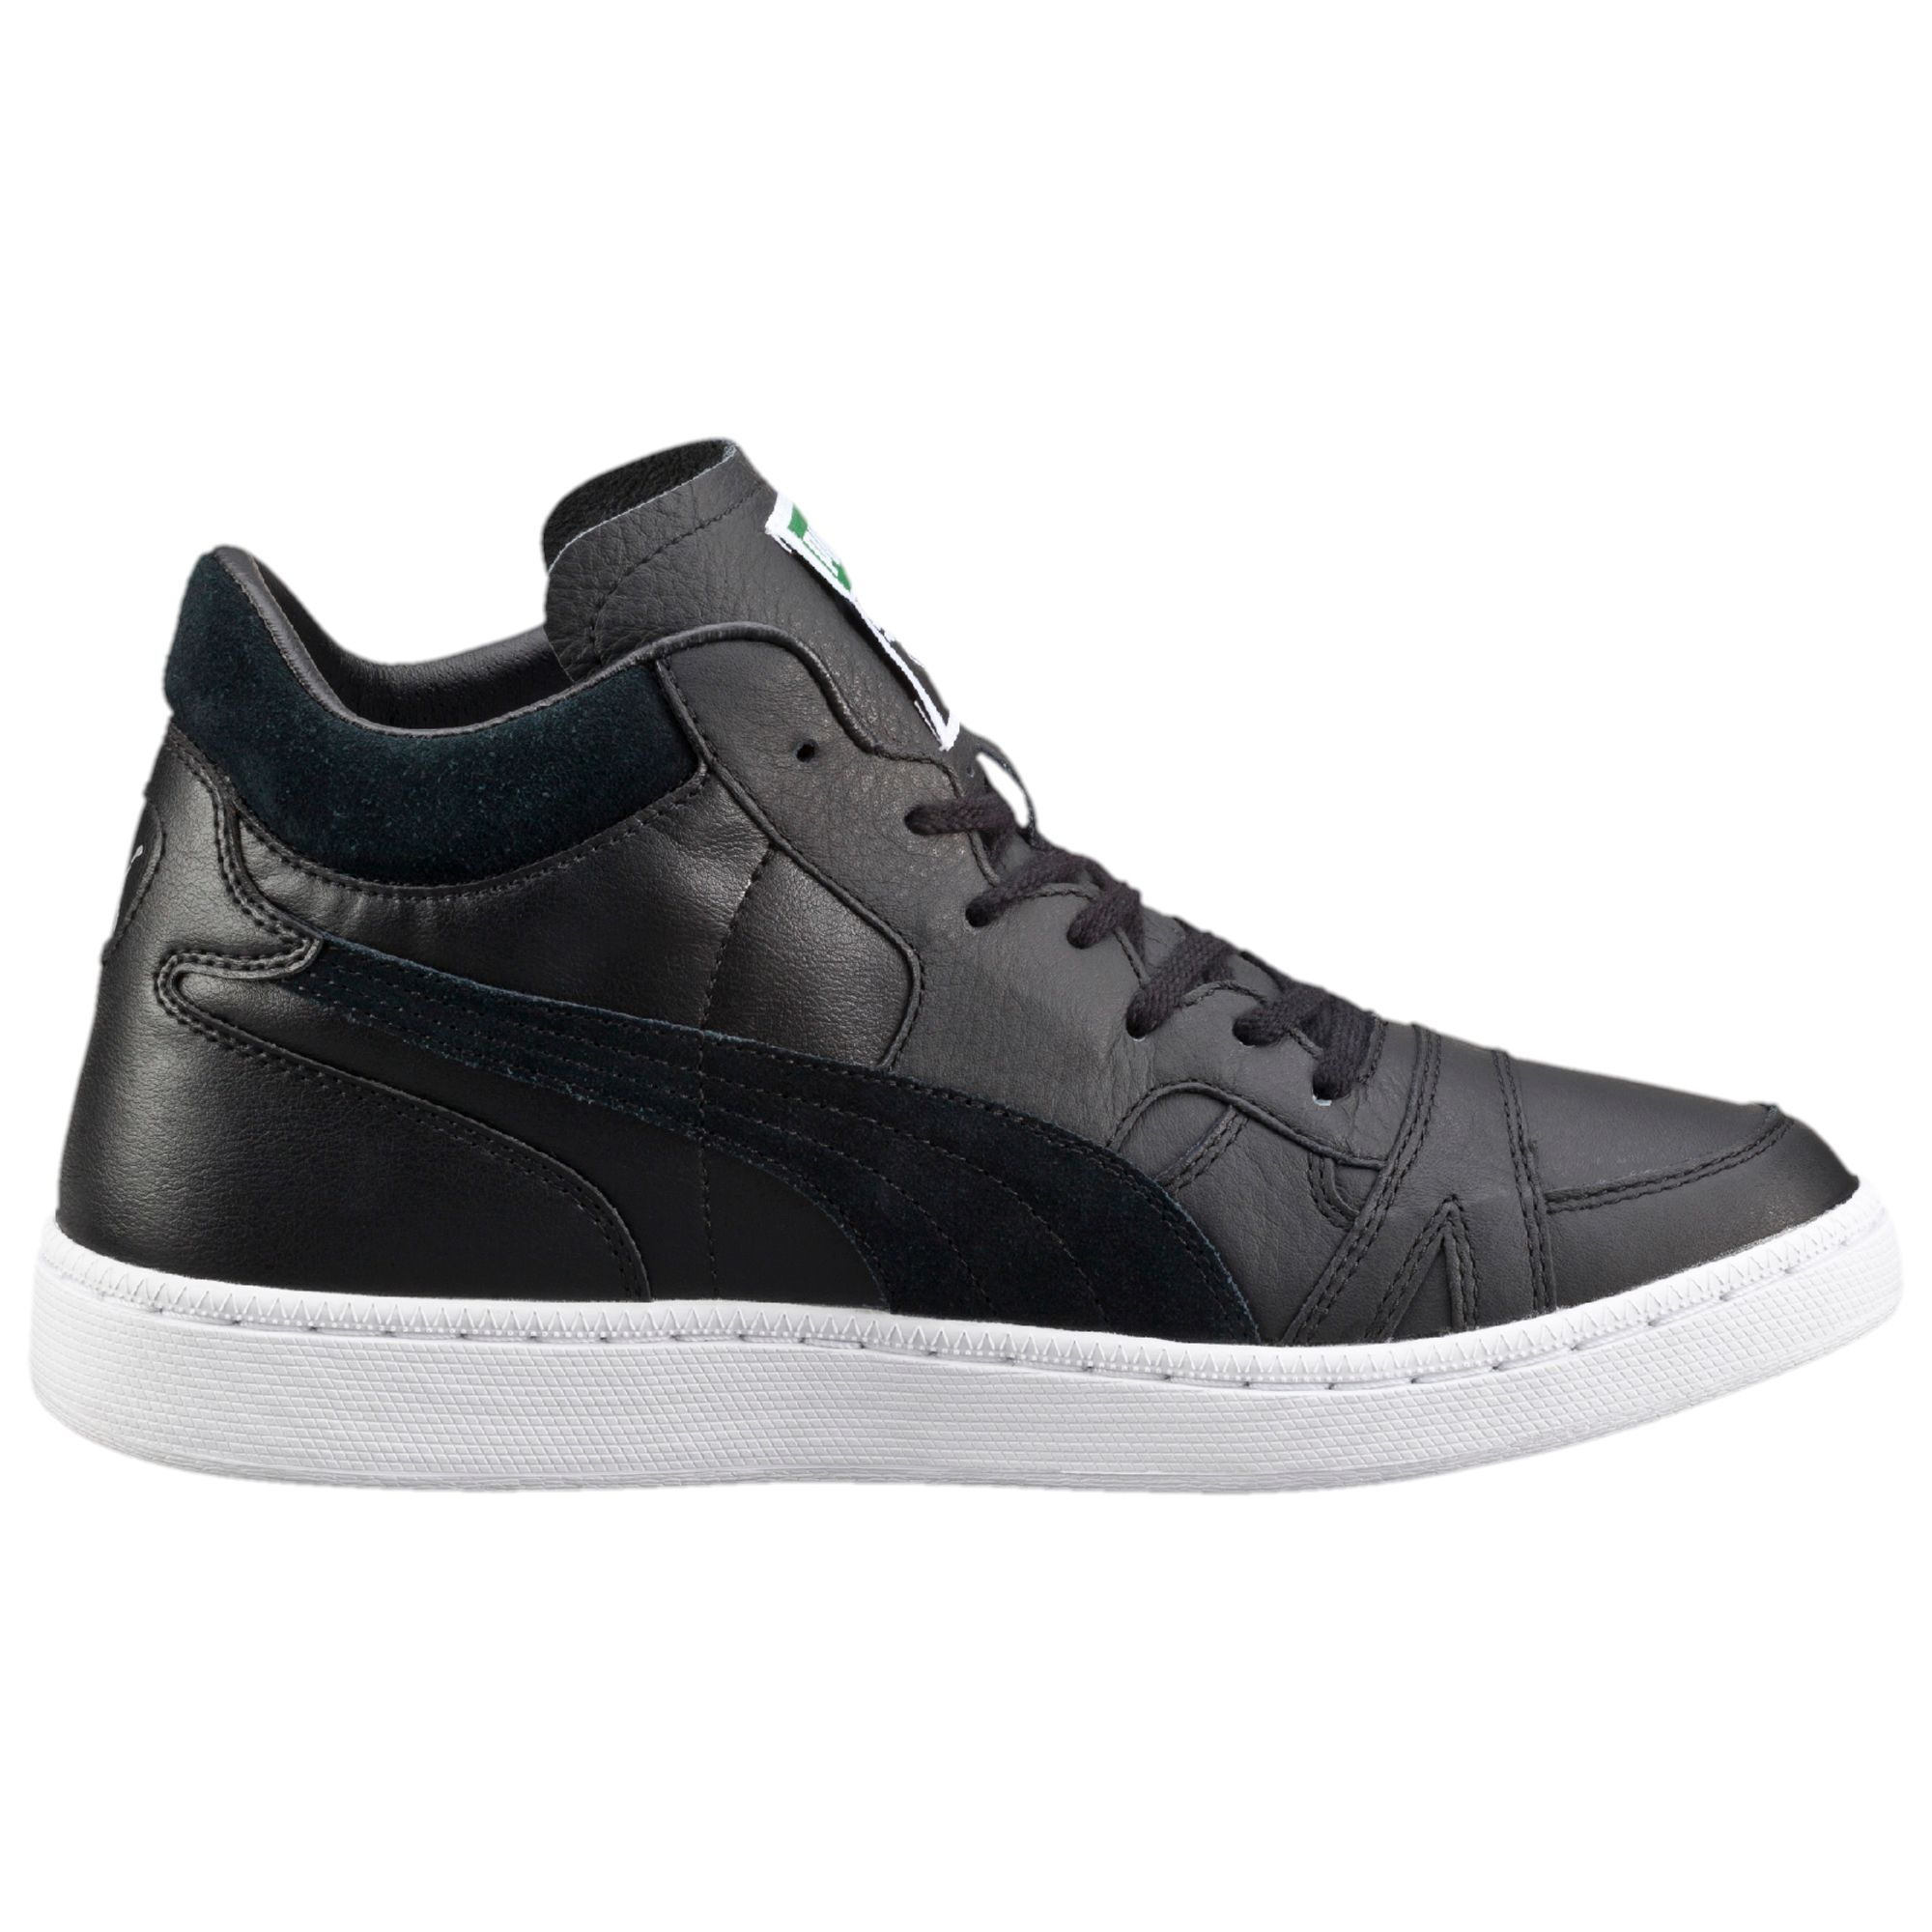 puma boris becker high tops schuhe turnschuhe. Black Bedroom Furniture Sets. Home Design Ideas